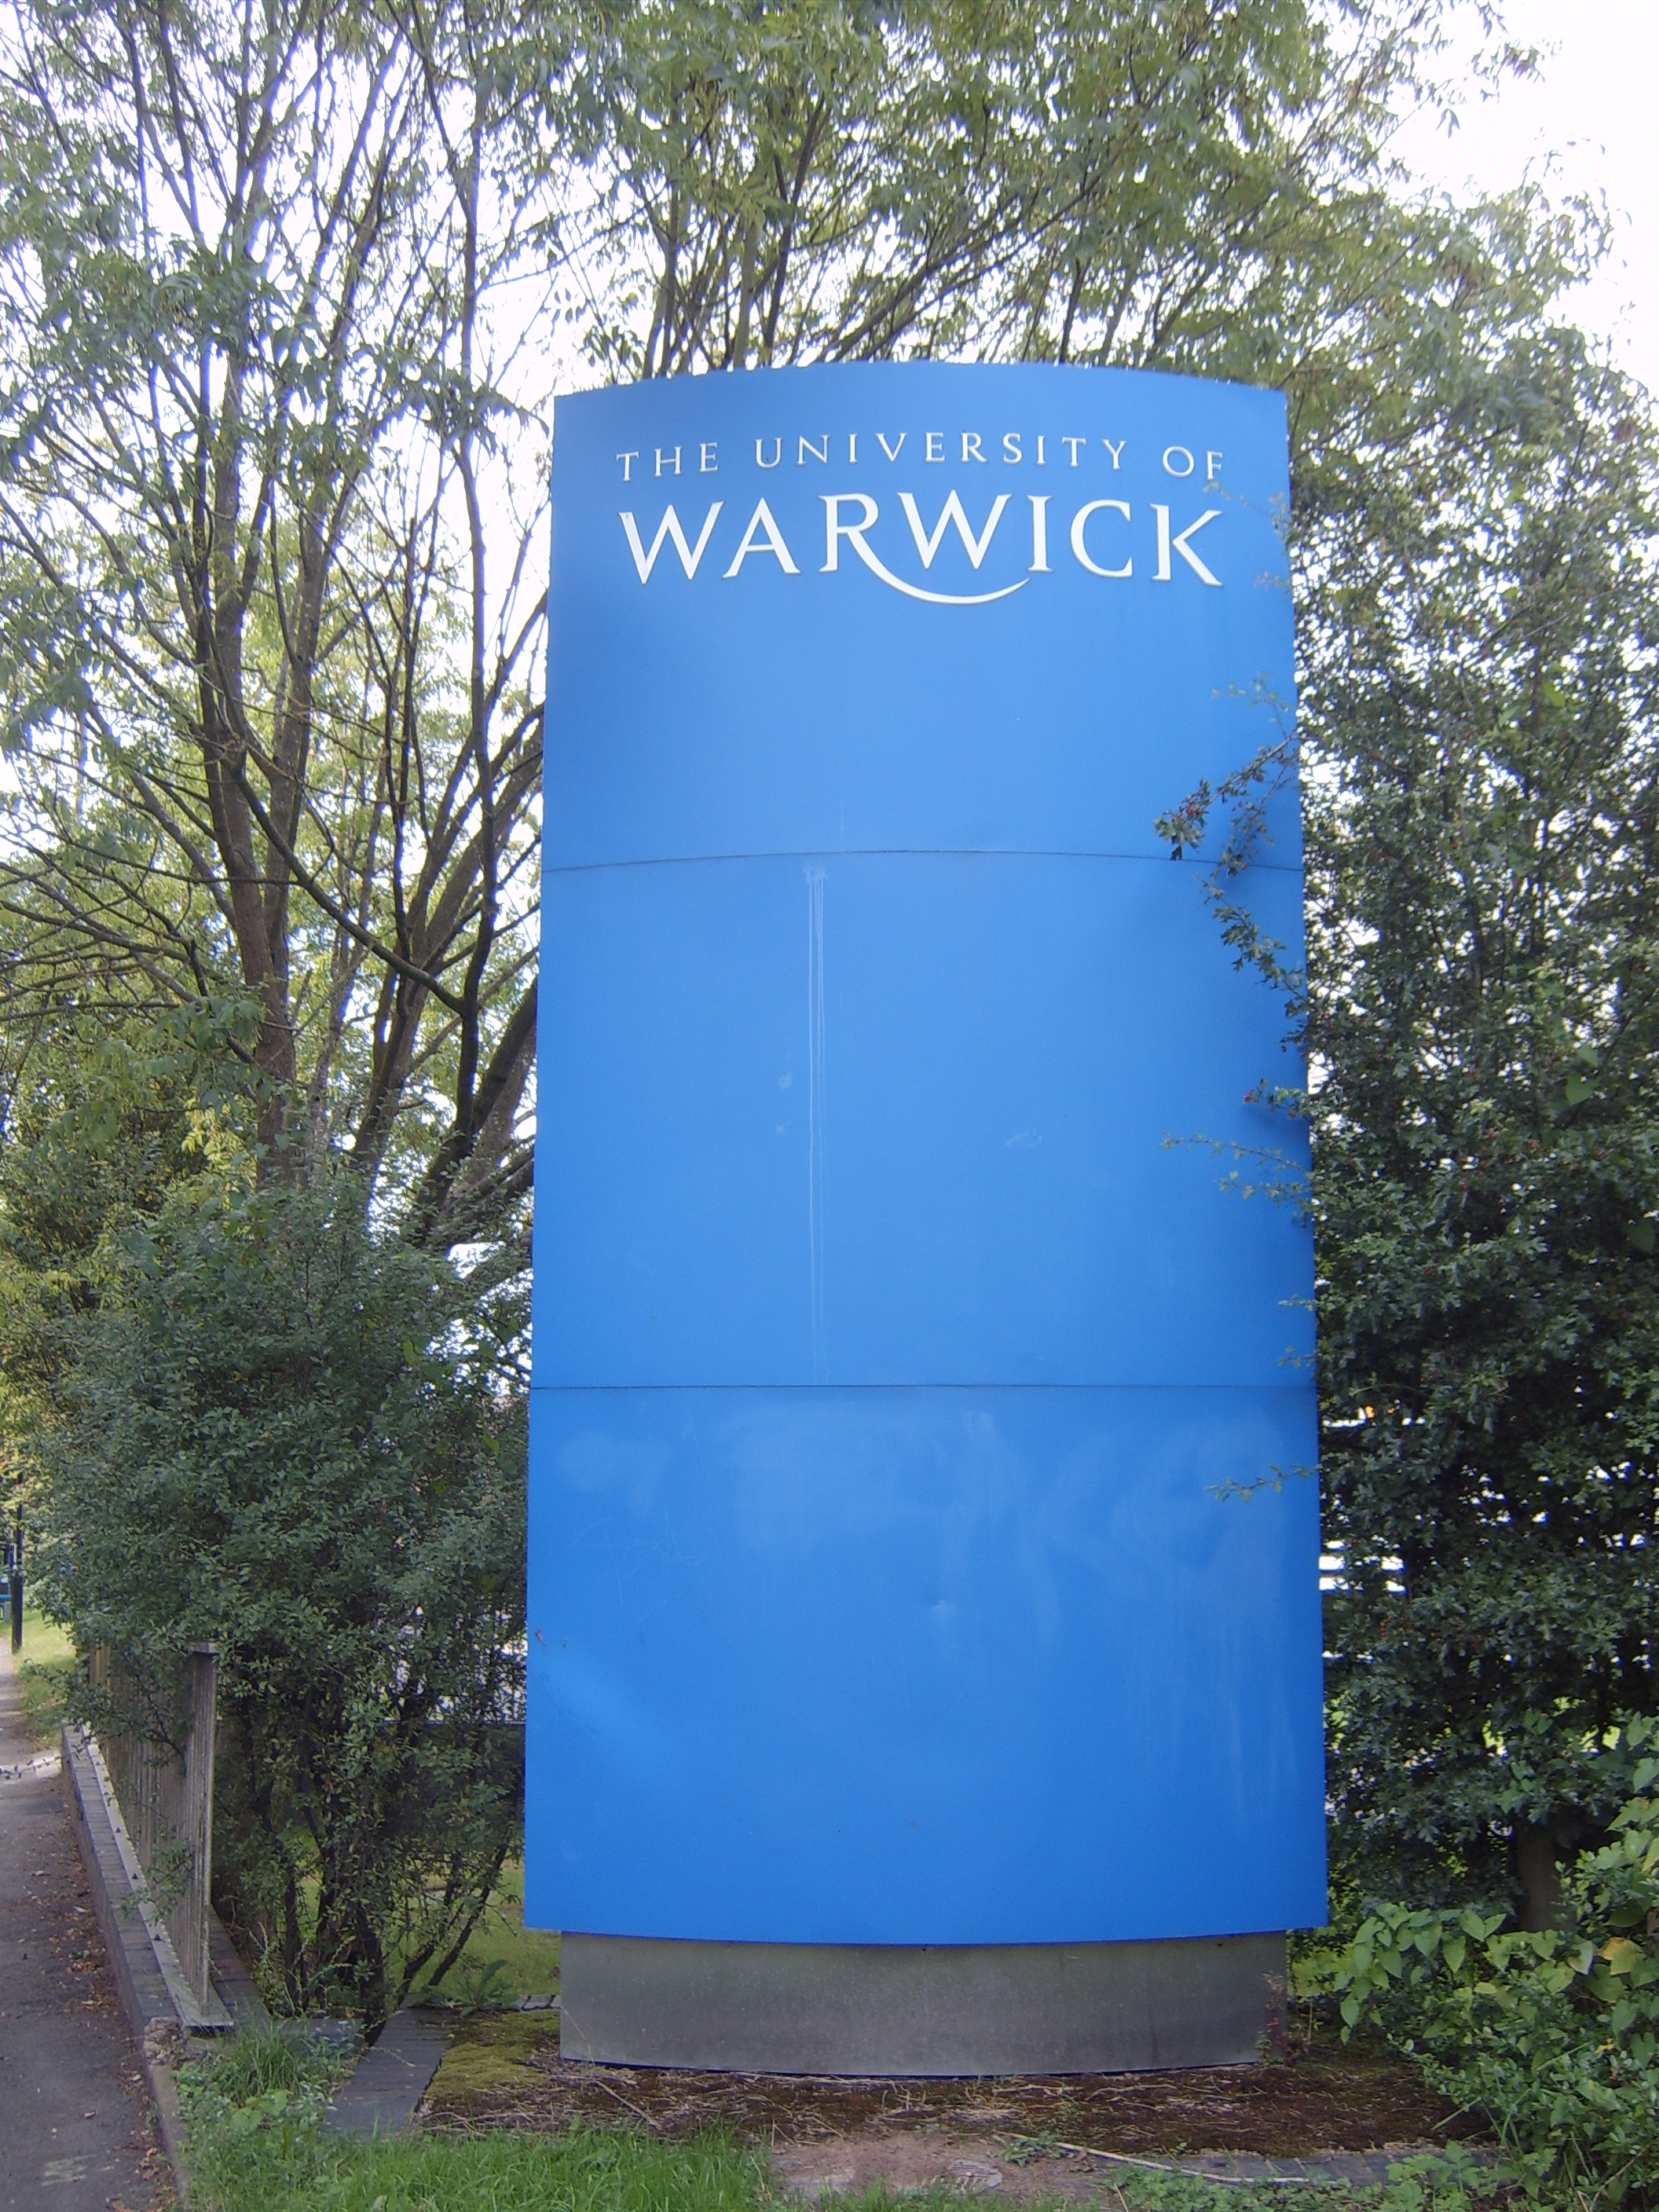 image of University of Warwick